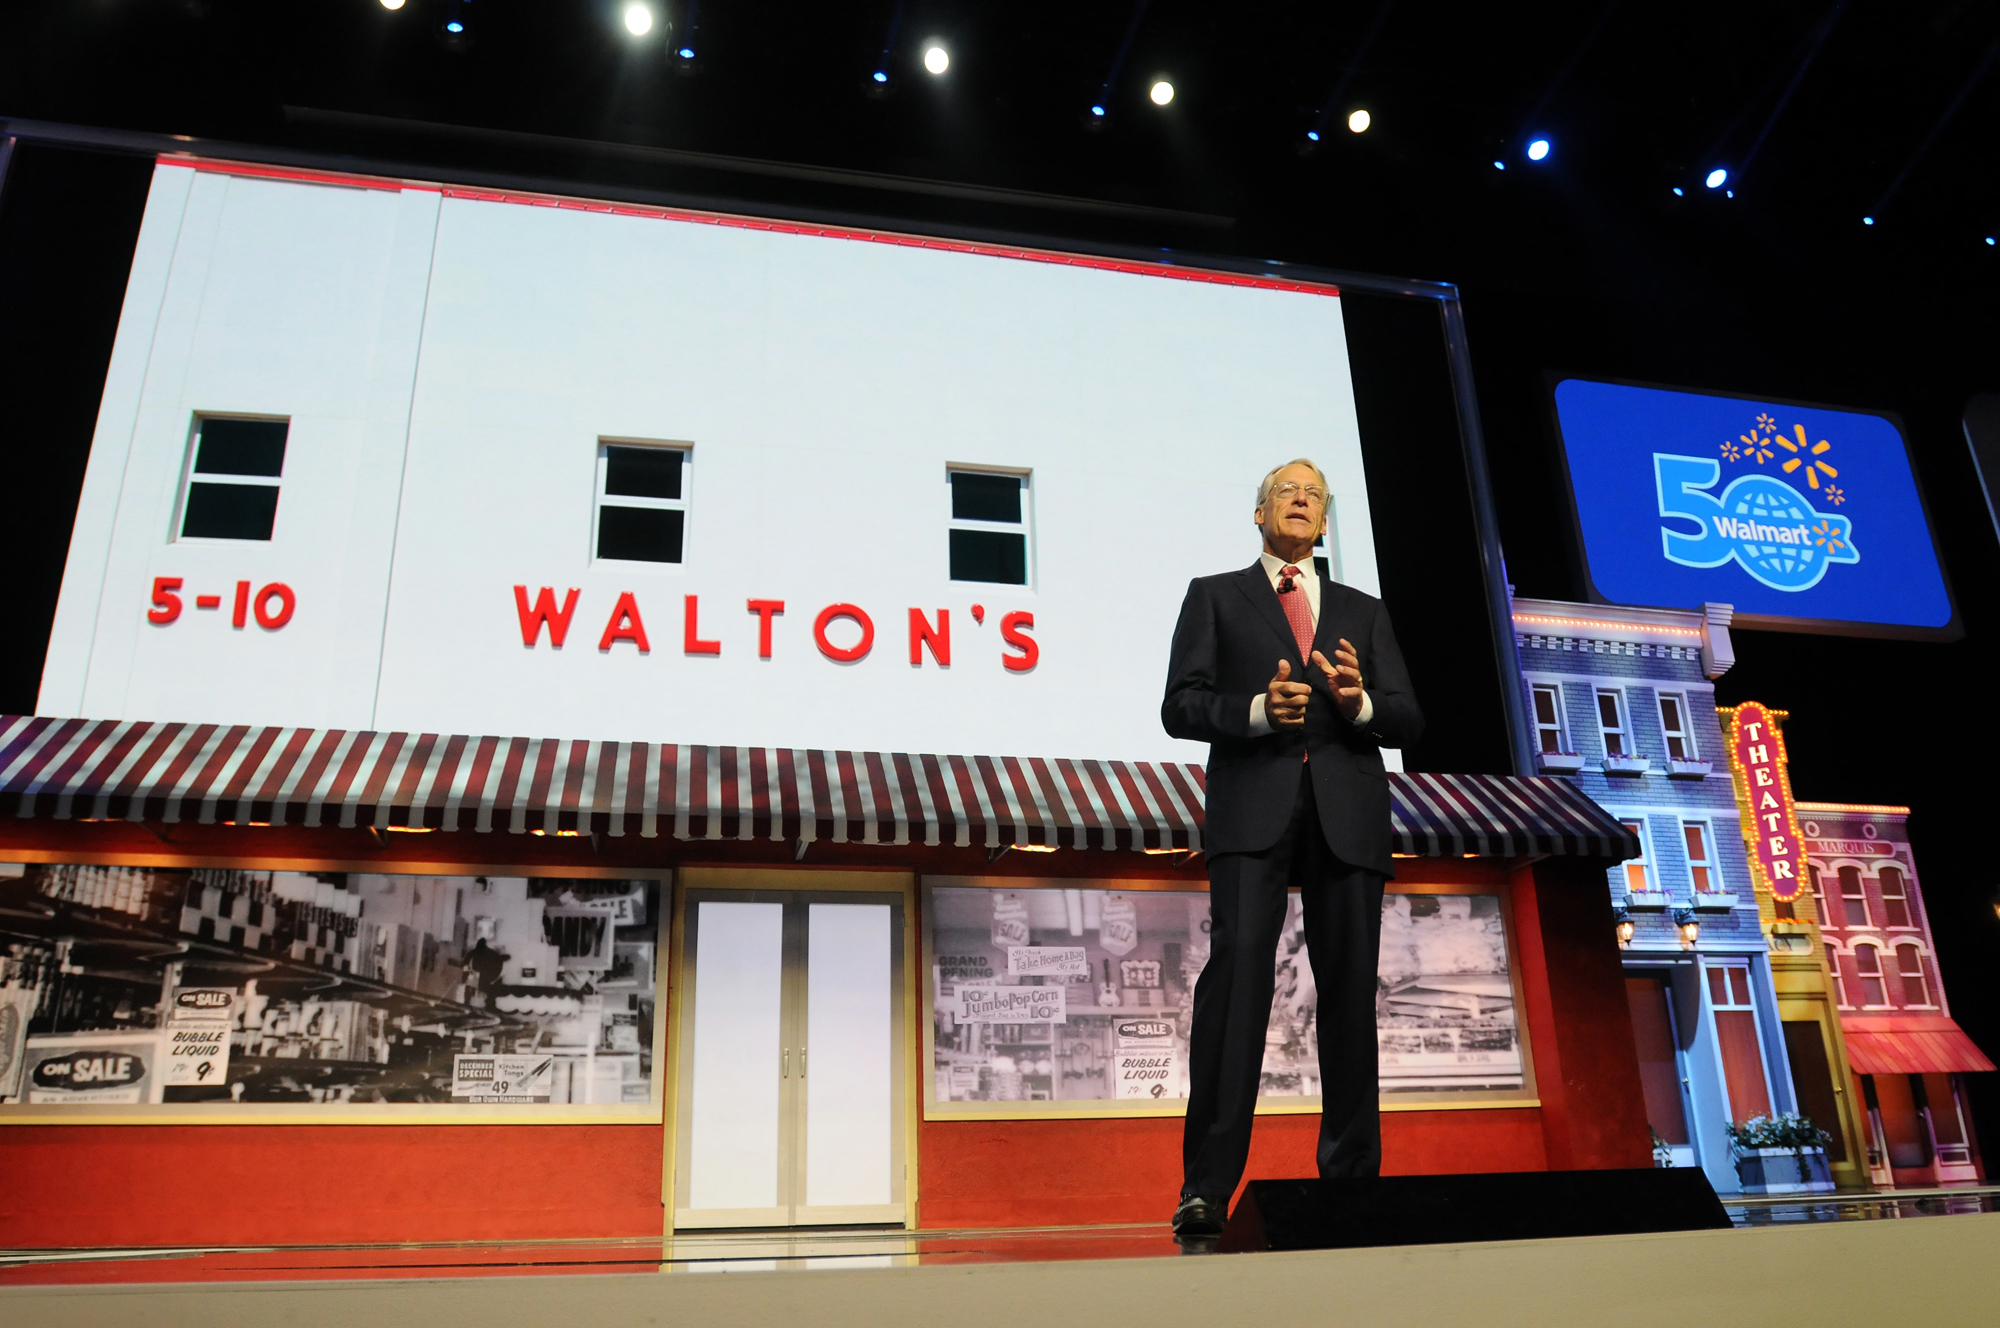 Another successful Walmart Shareholders event for 2012!